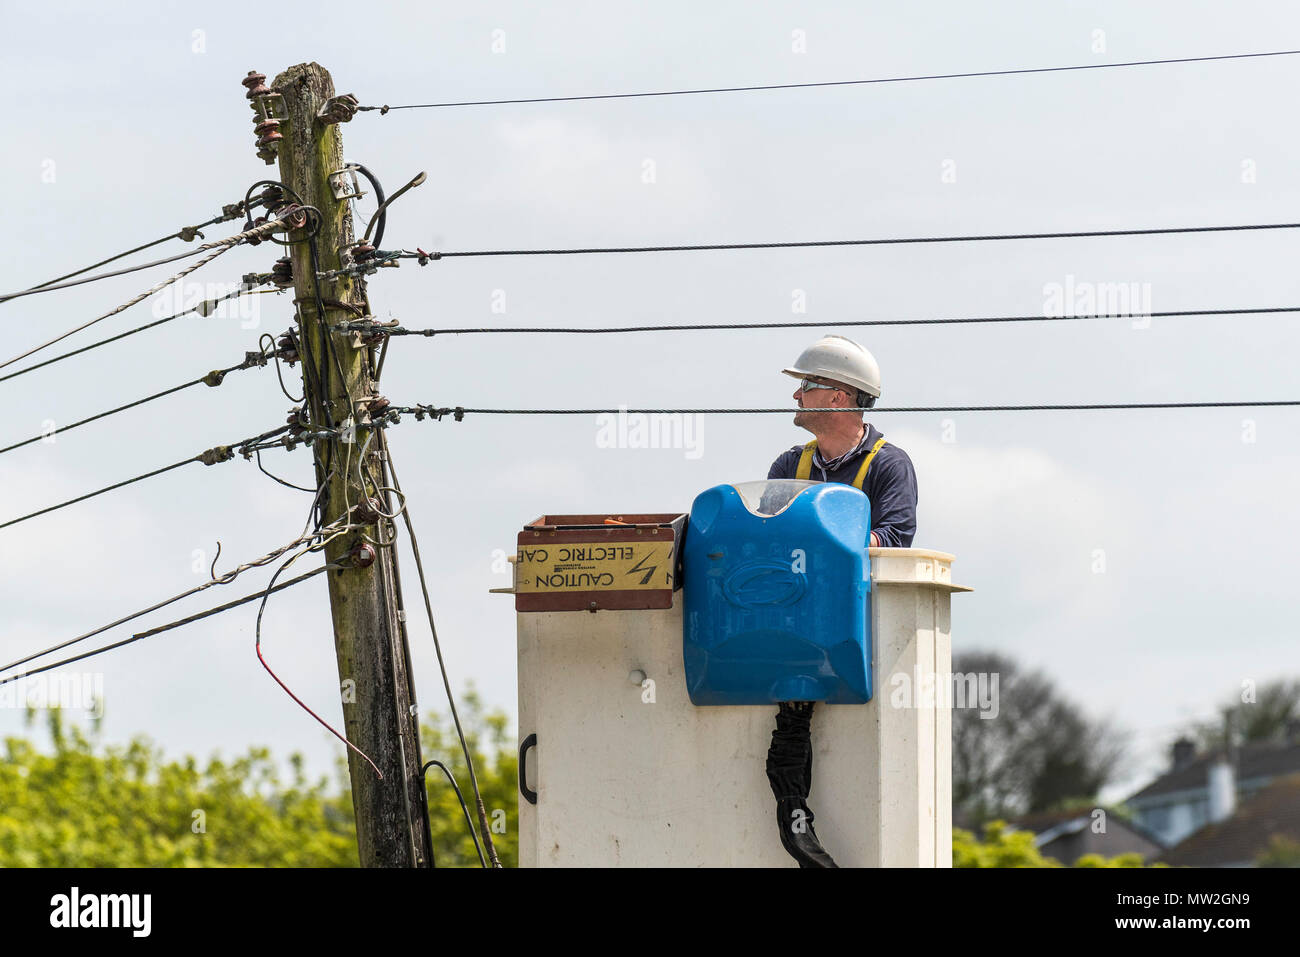 A South West Electricity worker working at height from a cherry picker. - Stock Image